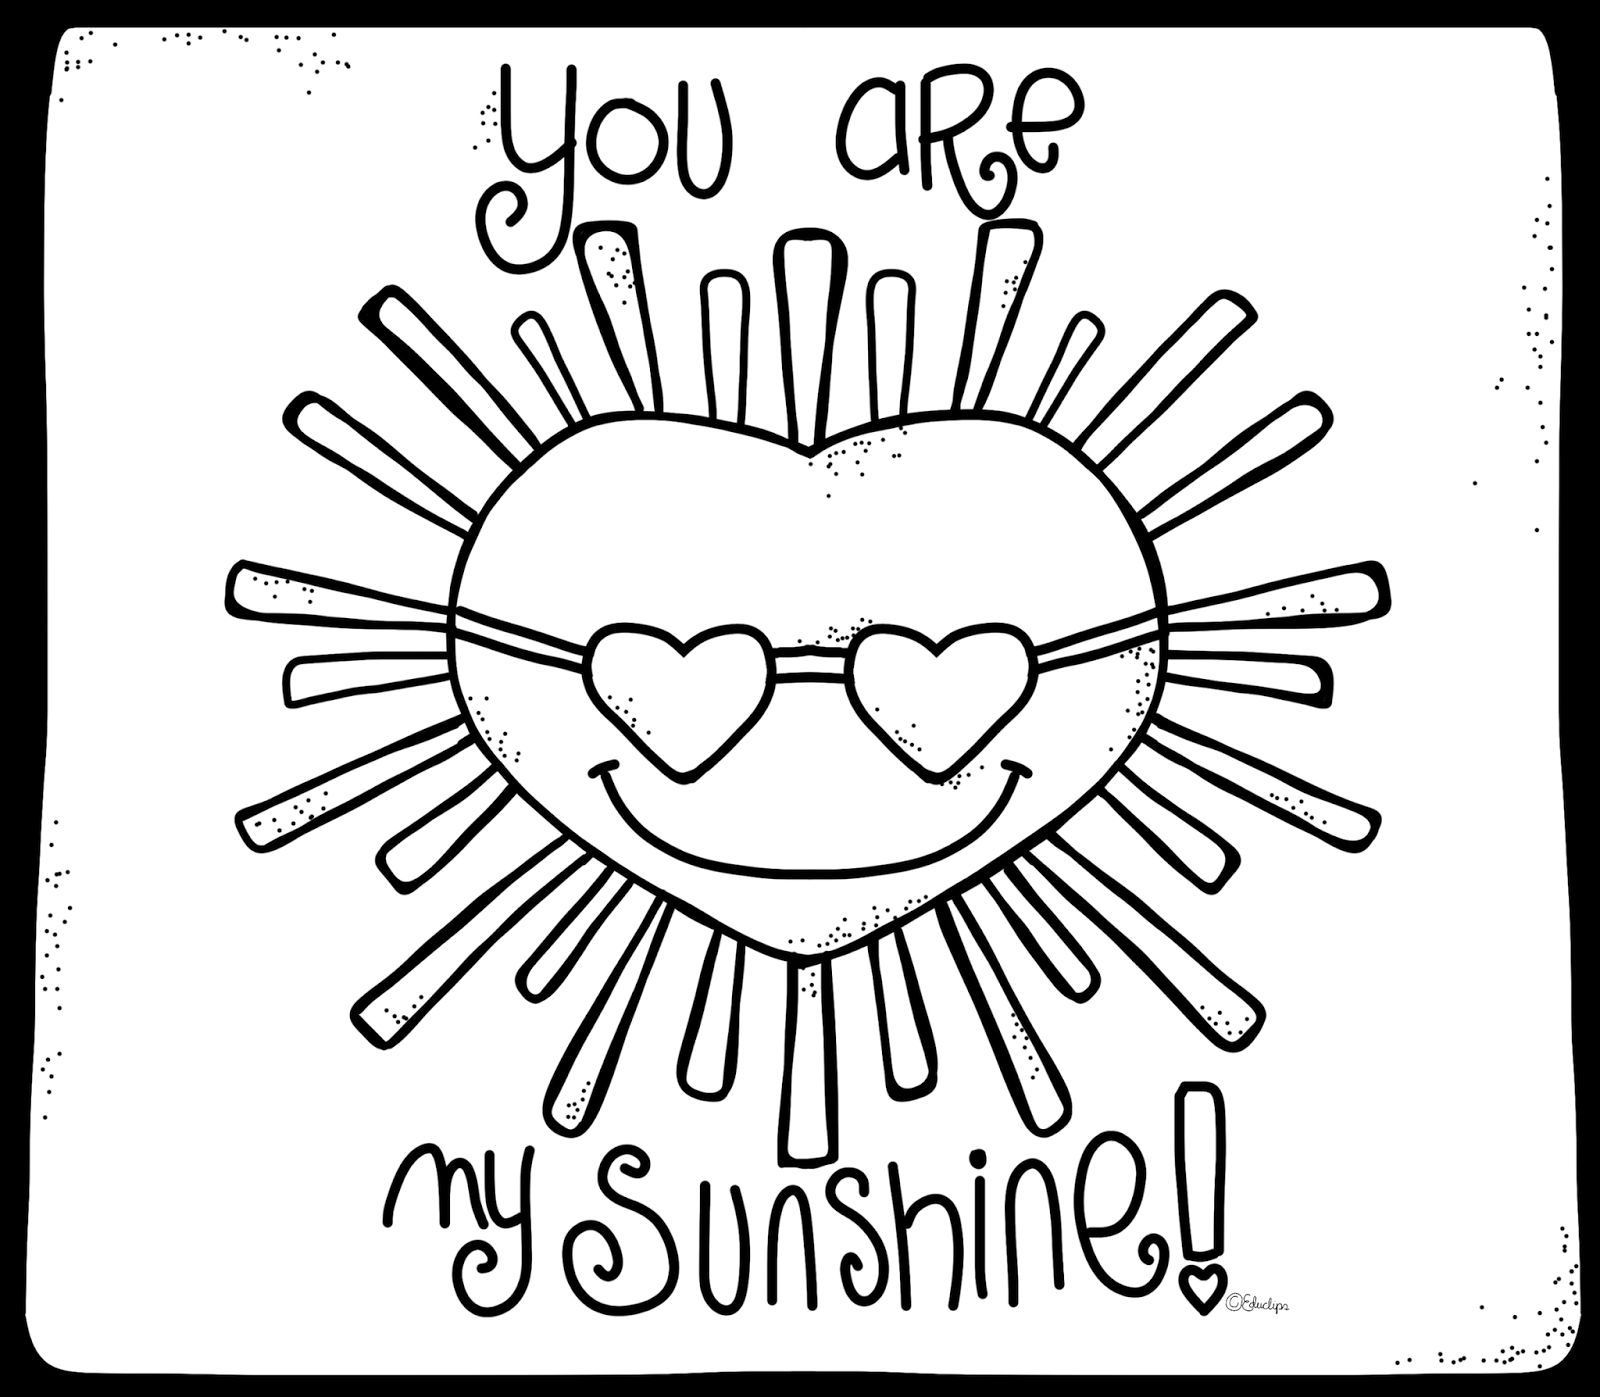 1600x1397 New You Are My Sunshine Coloring Pages Gallery Free Coloring Book